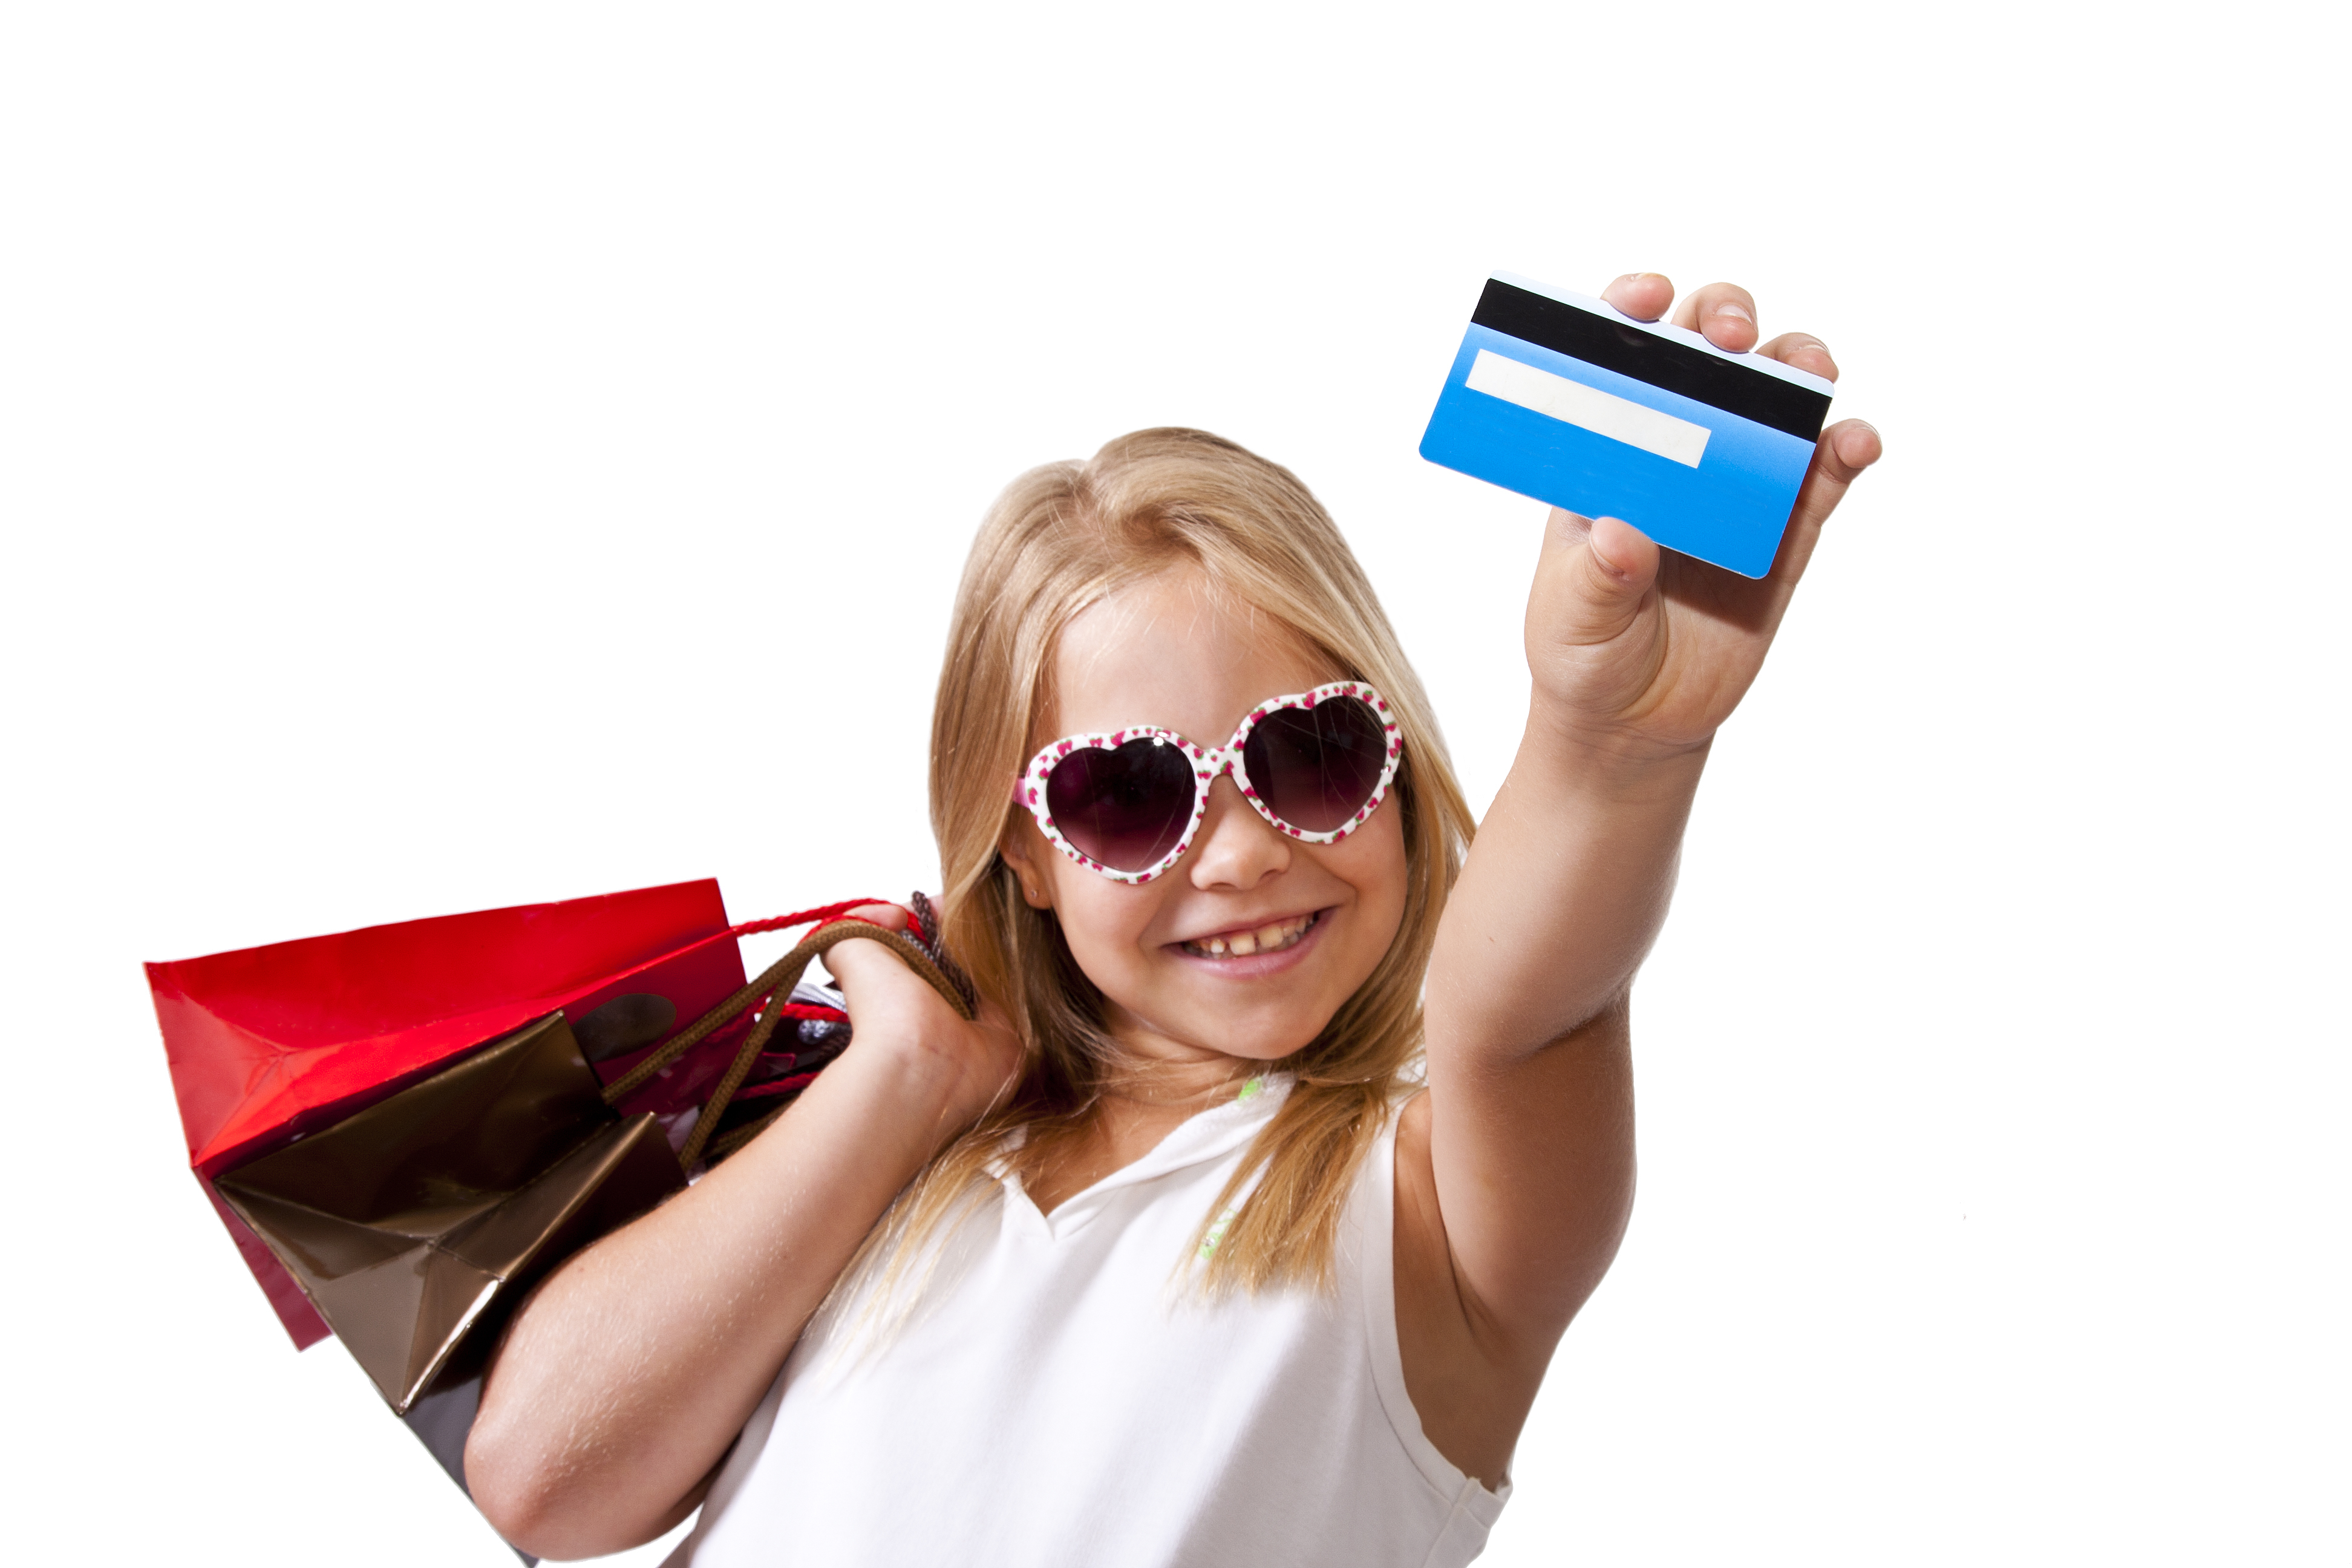 The thought of arming a child with a credit card sends chills down many a parent's spine. Yet, despite the fear of them draining family finances on childish things, giving kids cards emblazoned with their names has become a more common practice than it was just a few years ago.